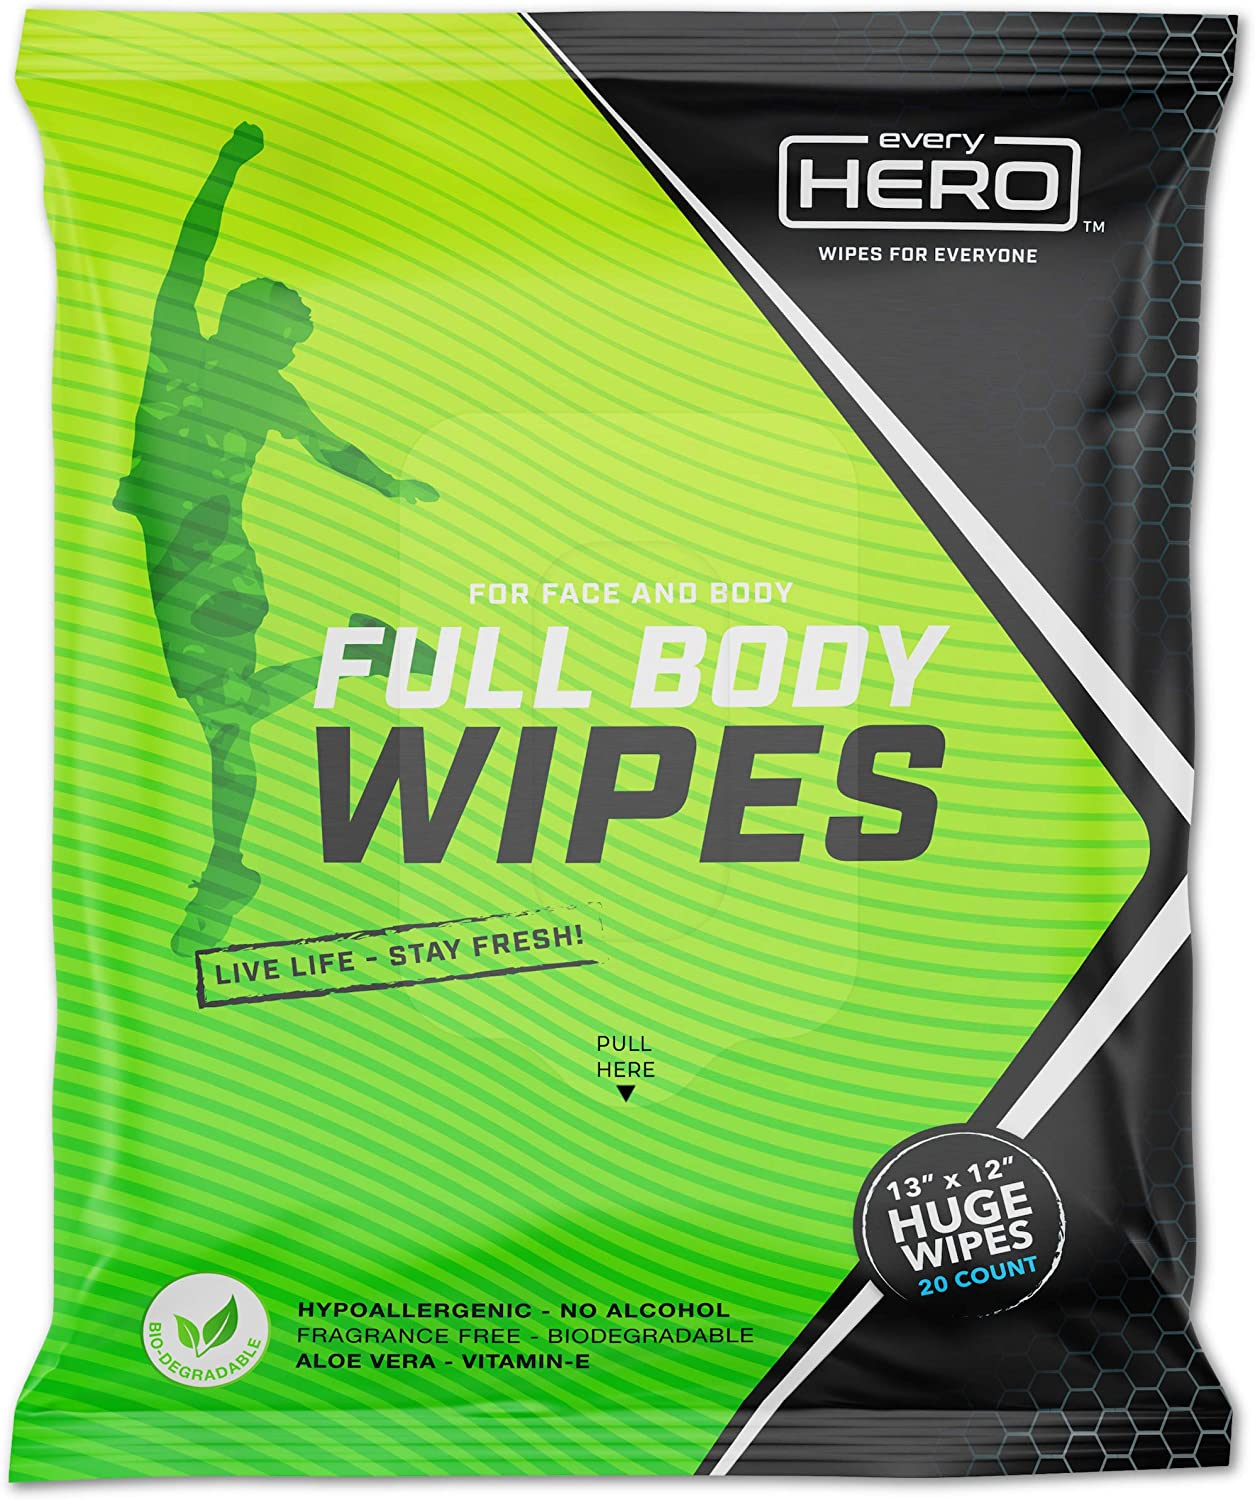 everyHERO Body Wipes 20 Count - No Shower Wipes for Adults - Extra Large for Post Workout, Camping, Travel - Unscented - Biodegradable - All Natural: Health & Personal Care